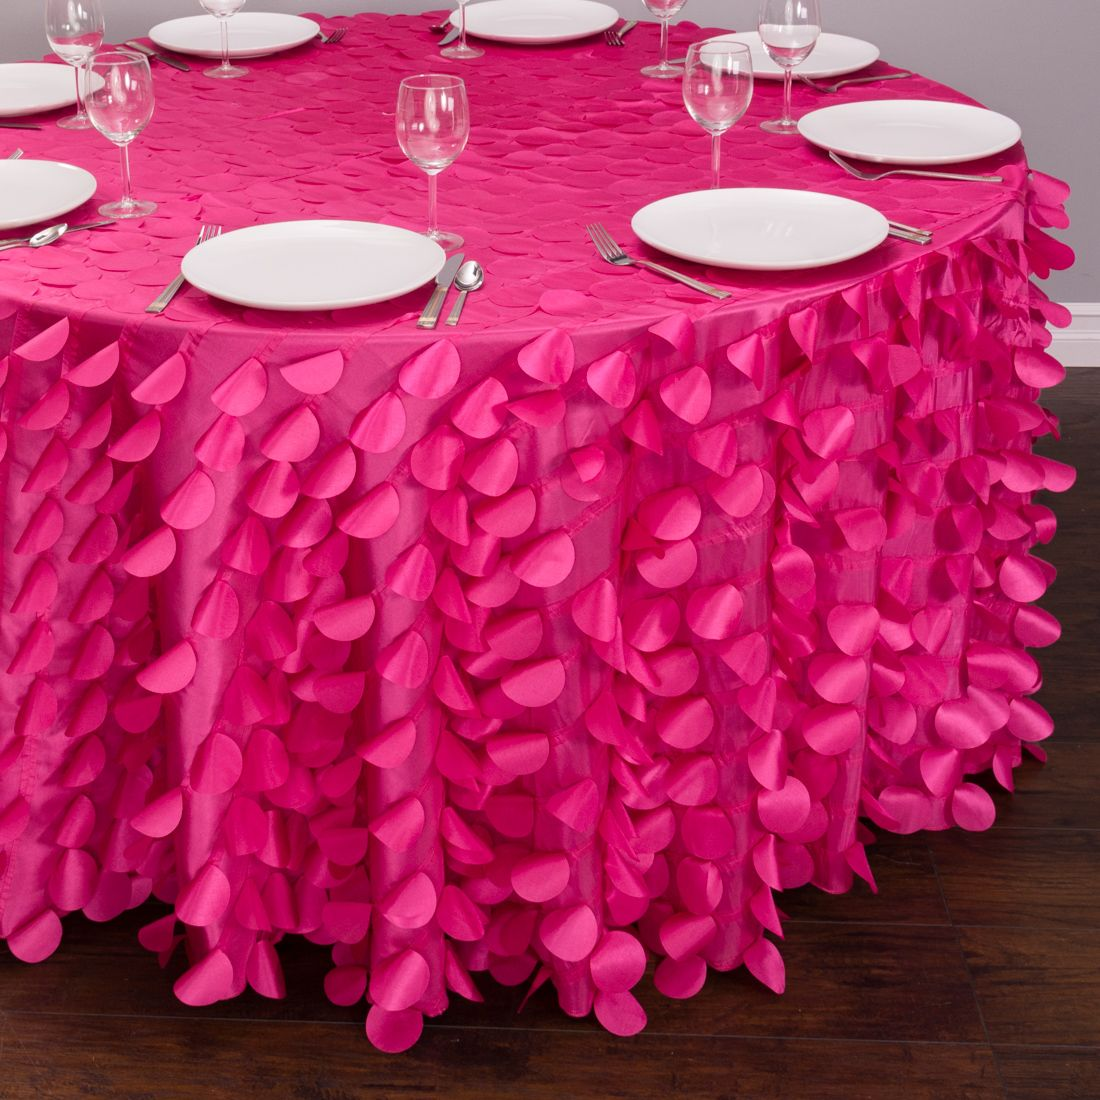 Awesome website To rent linens and etc Linentablecloth 118